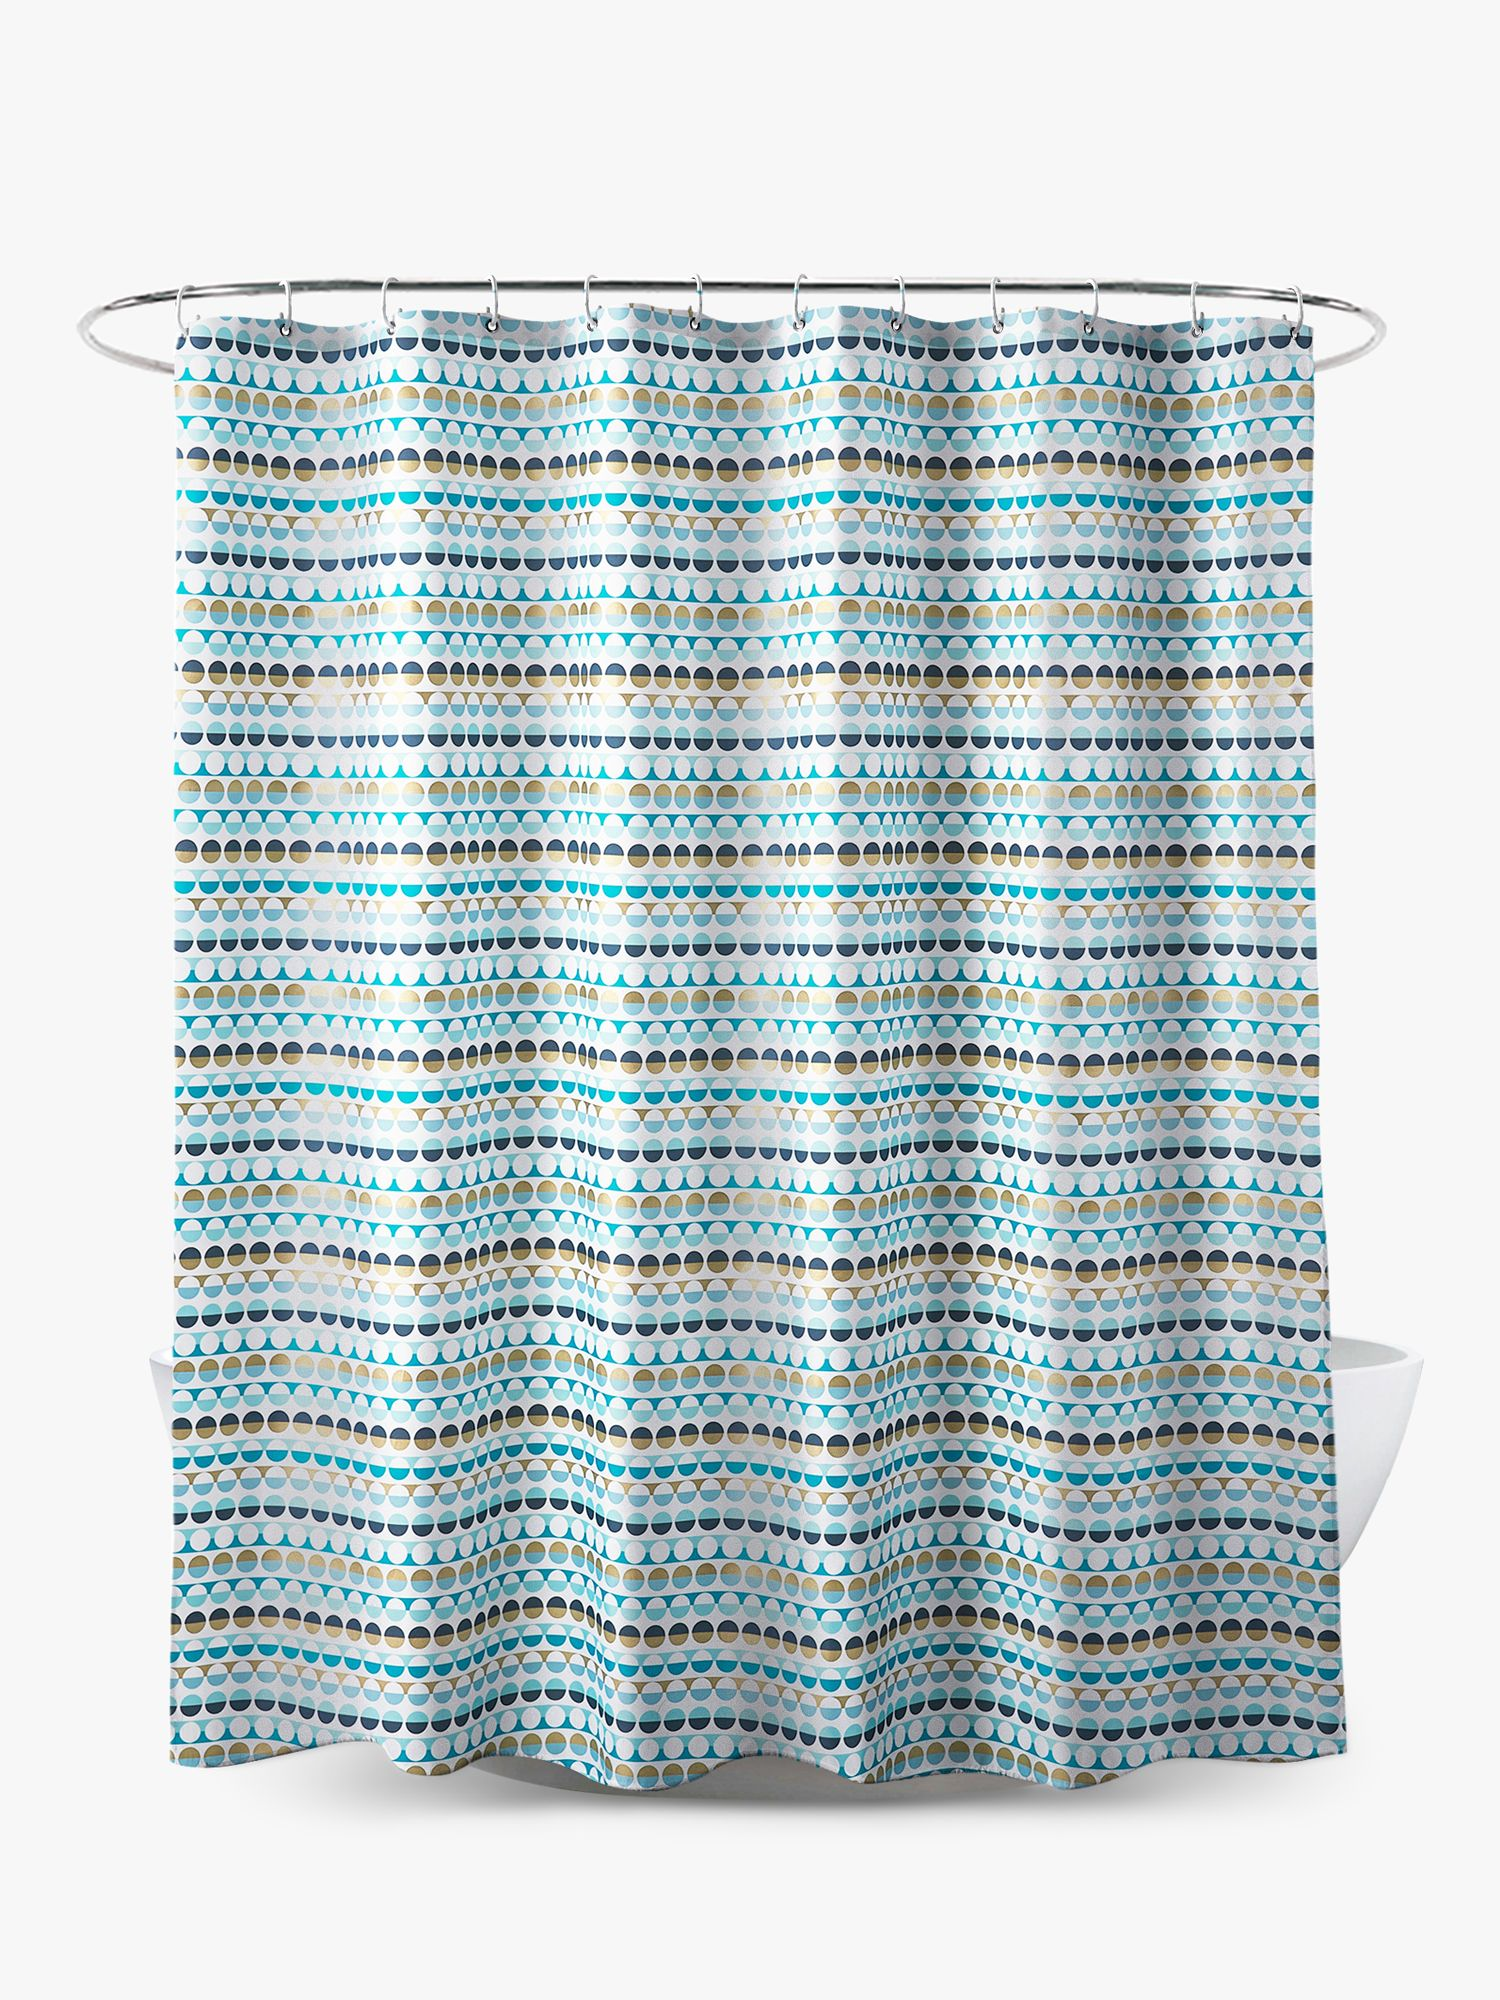 Margo Selby Margo Selby Shower Curtain